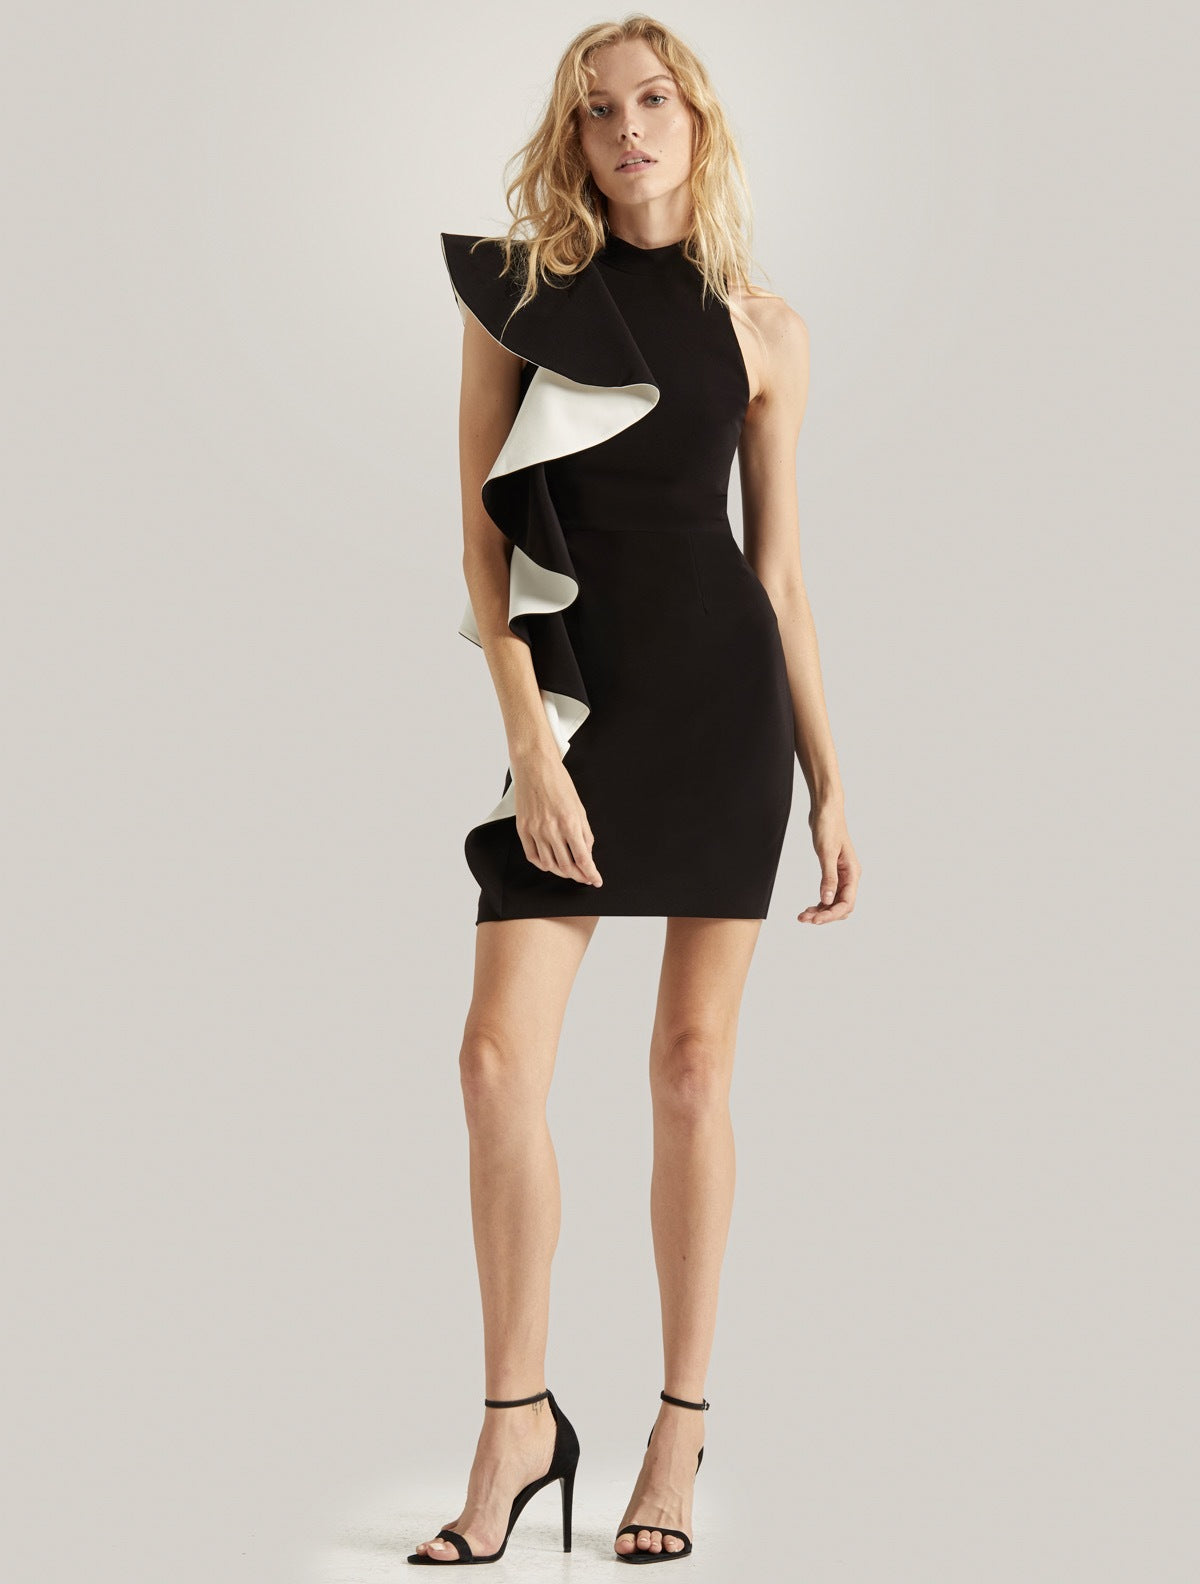 FLOUNCE CREPE DRESS - Halston